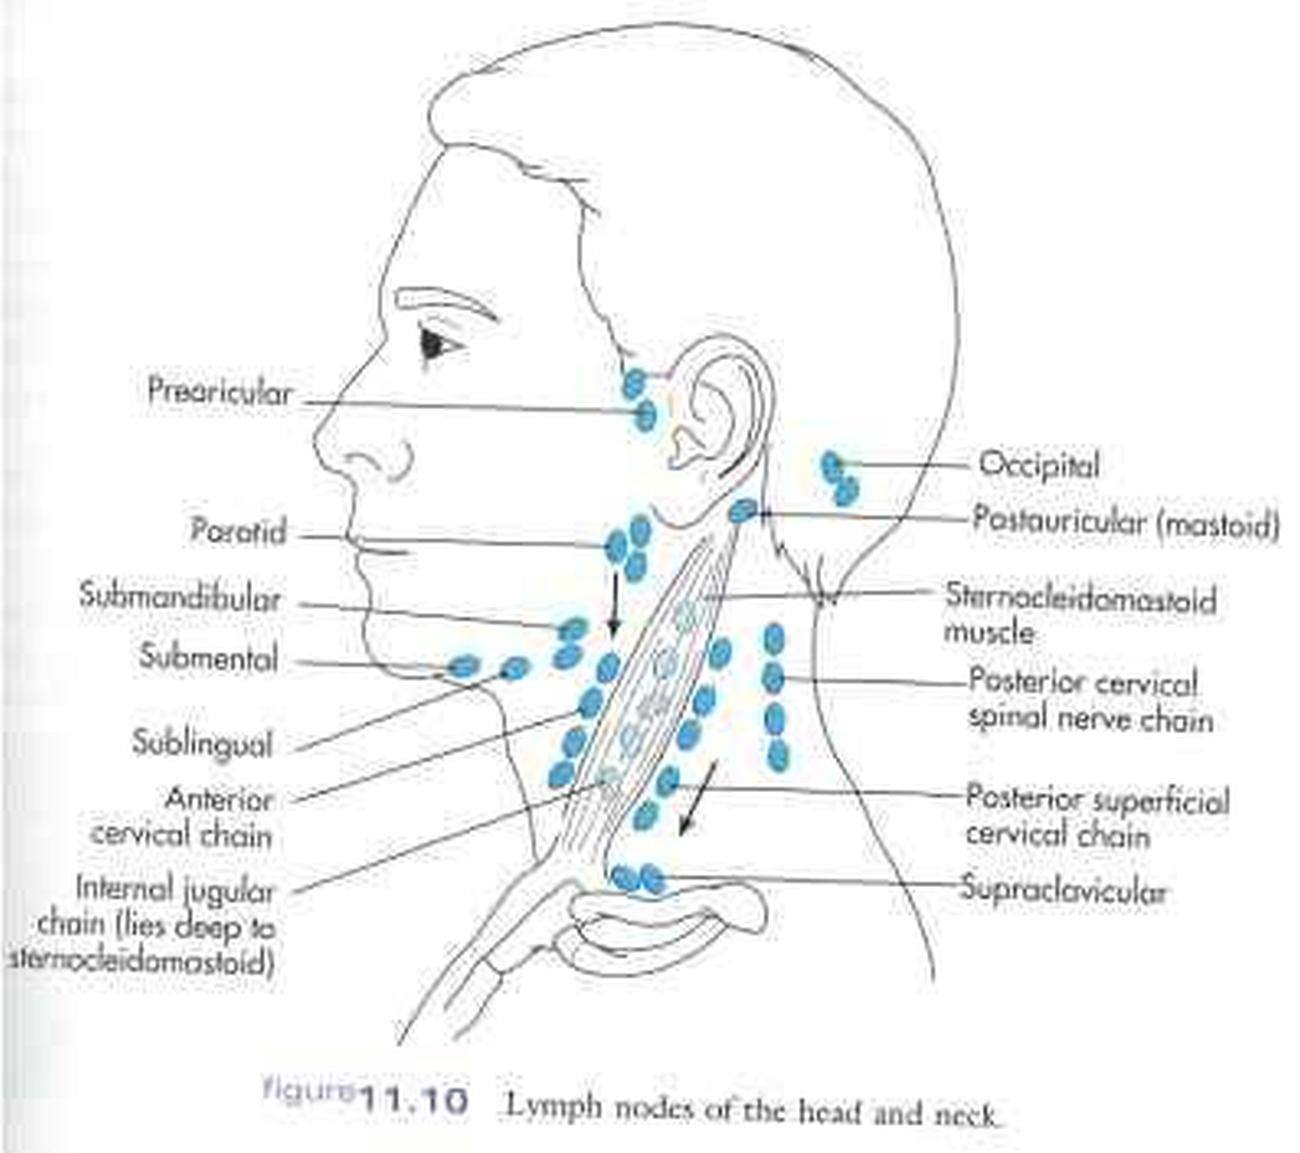 lymph nodes in neck diagram wiring for home generator pictures of cervical